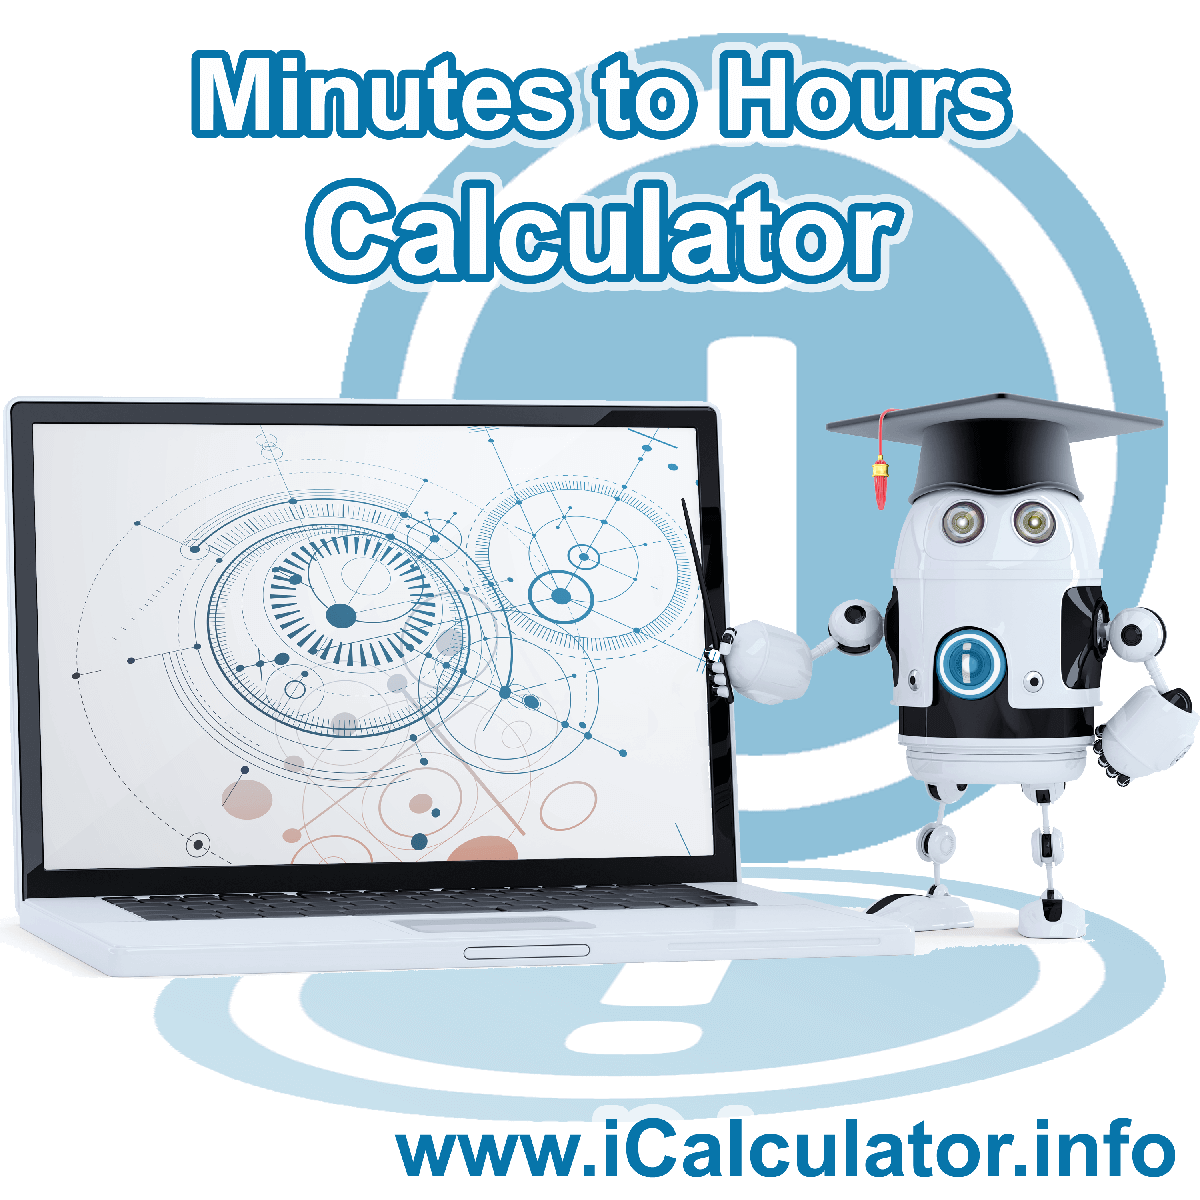 Minutes to Hours Converter Calculator: This image shows Minutes to Hours Conversion Formula with associated calculations used by the Minutes to Hours Converter Calculator